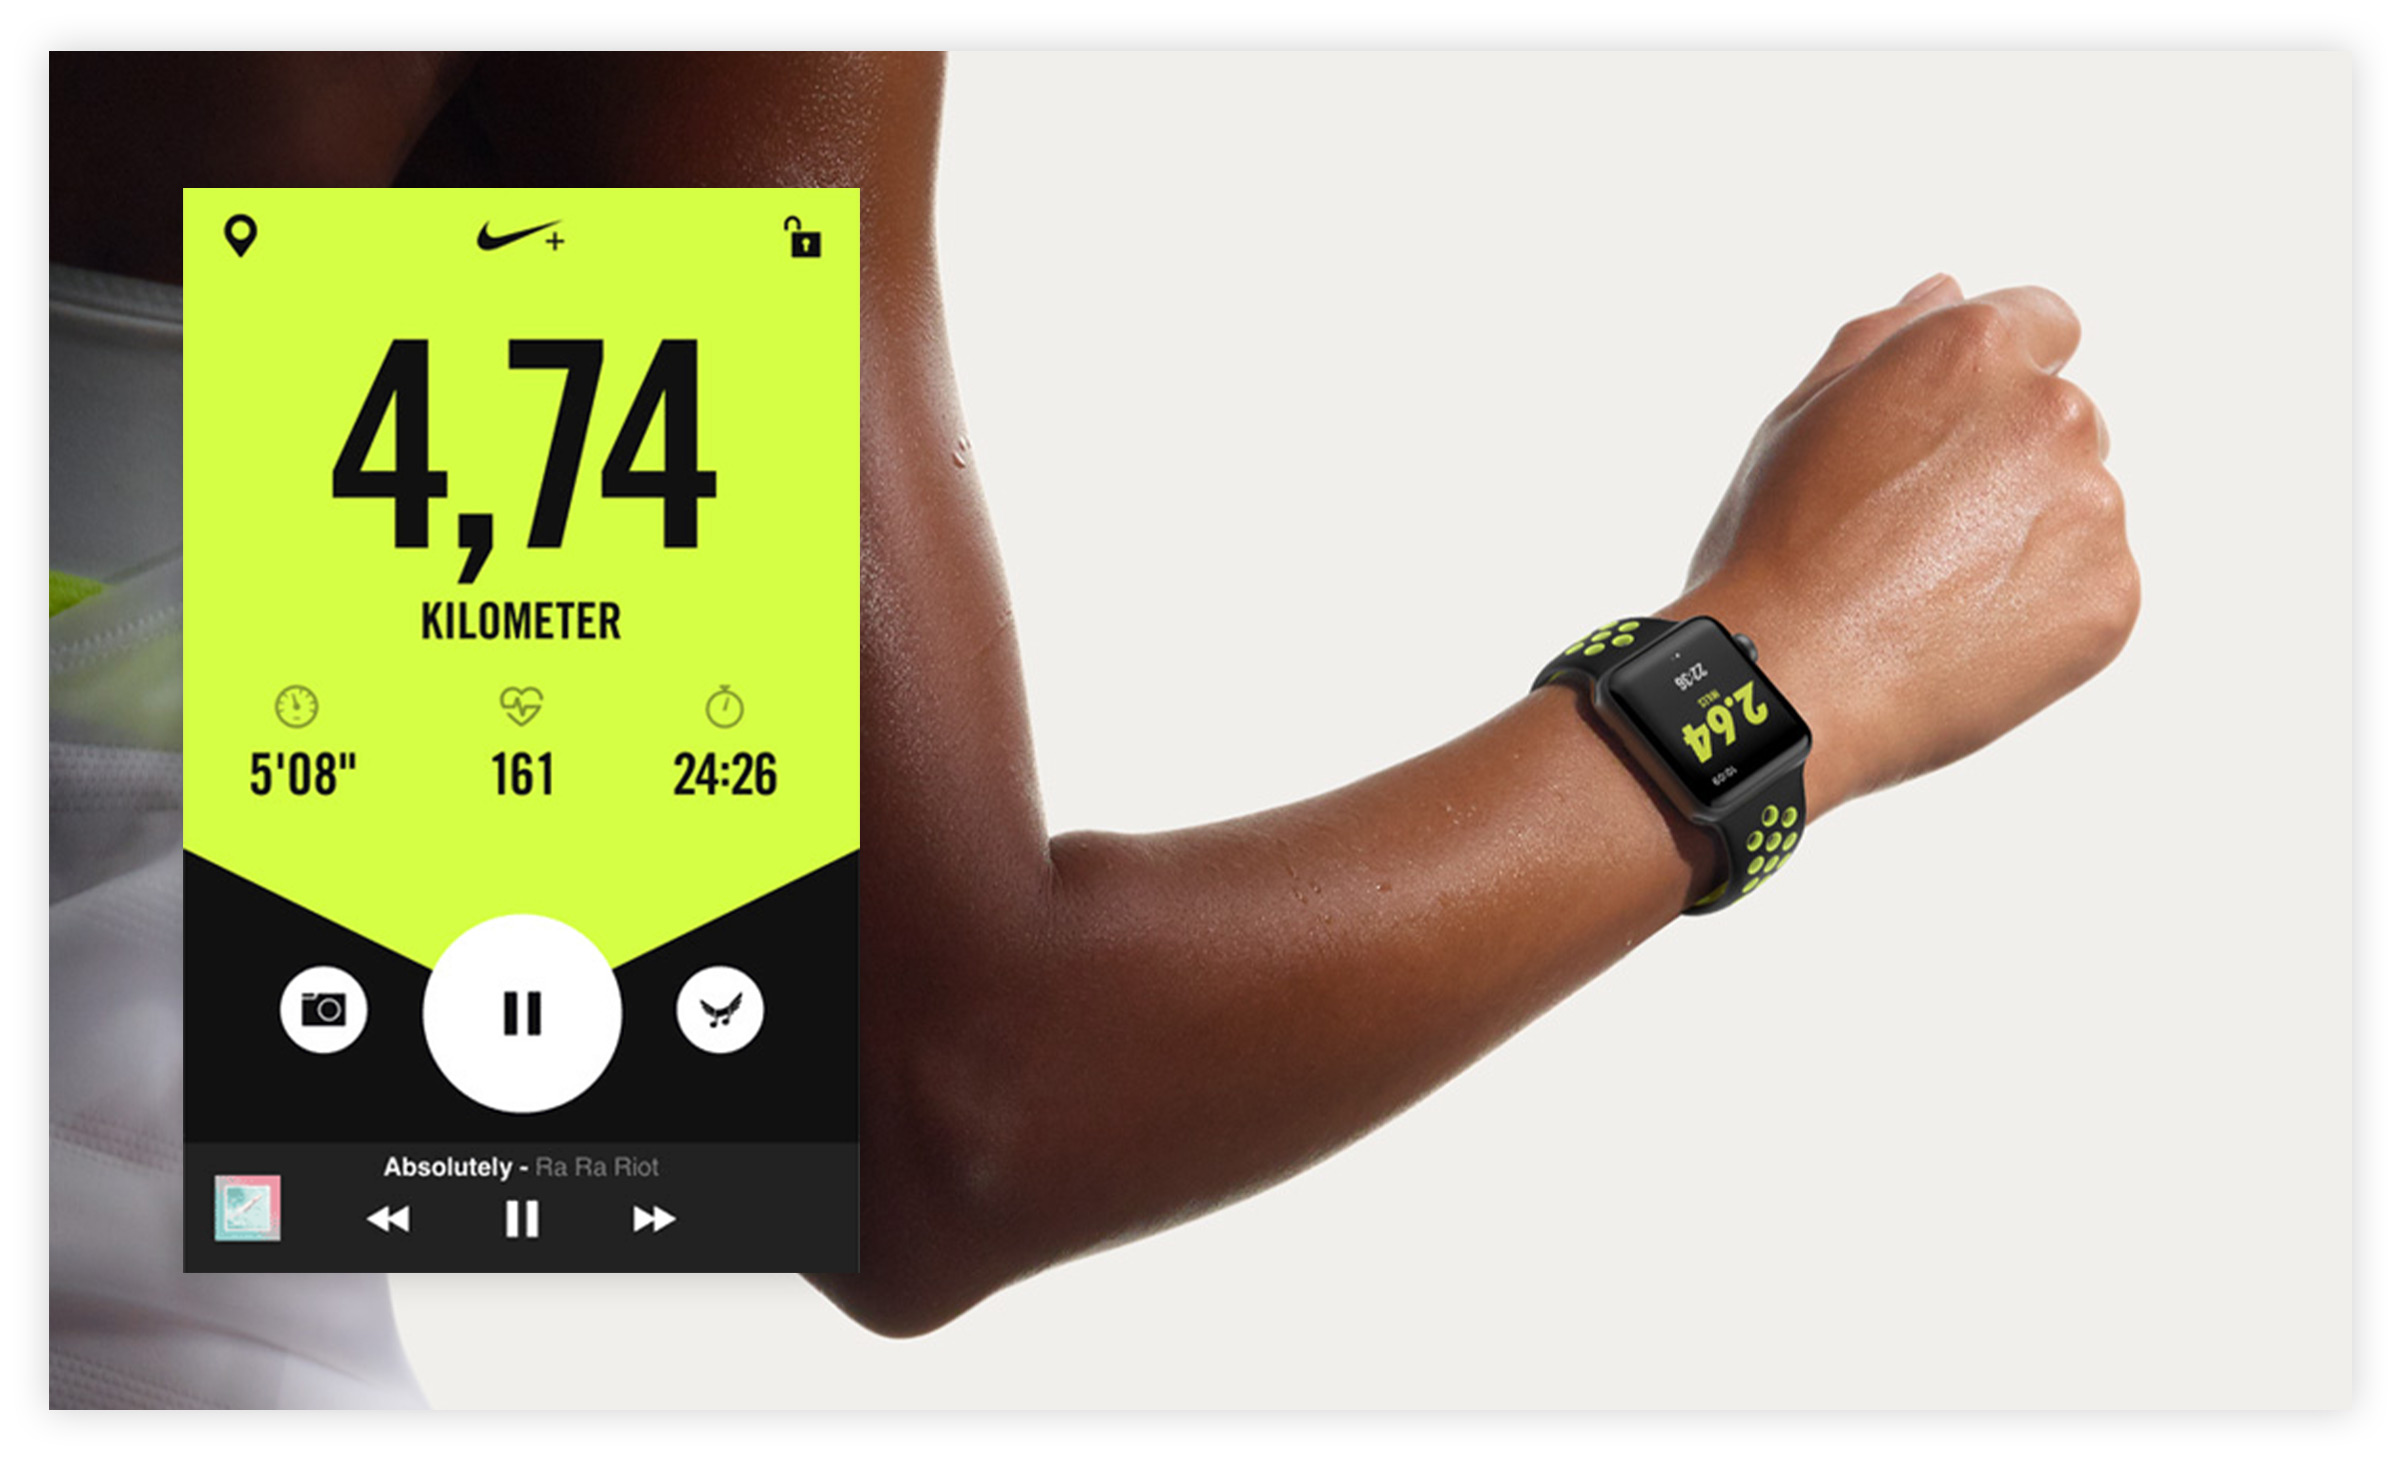 Nike's user ecosystem is an excellent example of the strength of design thinking.